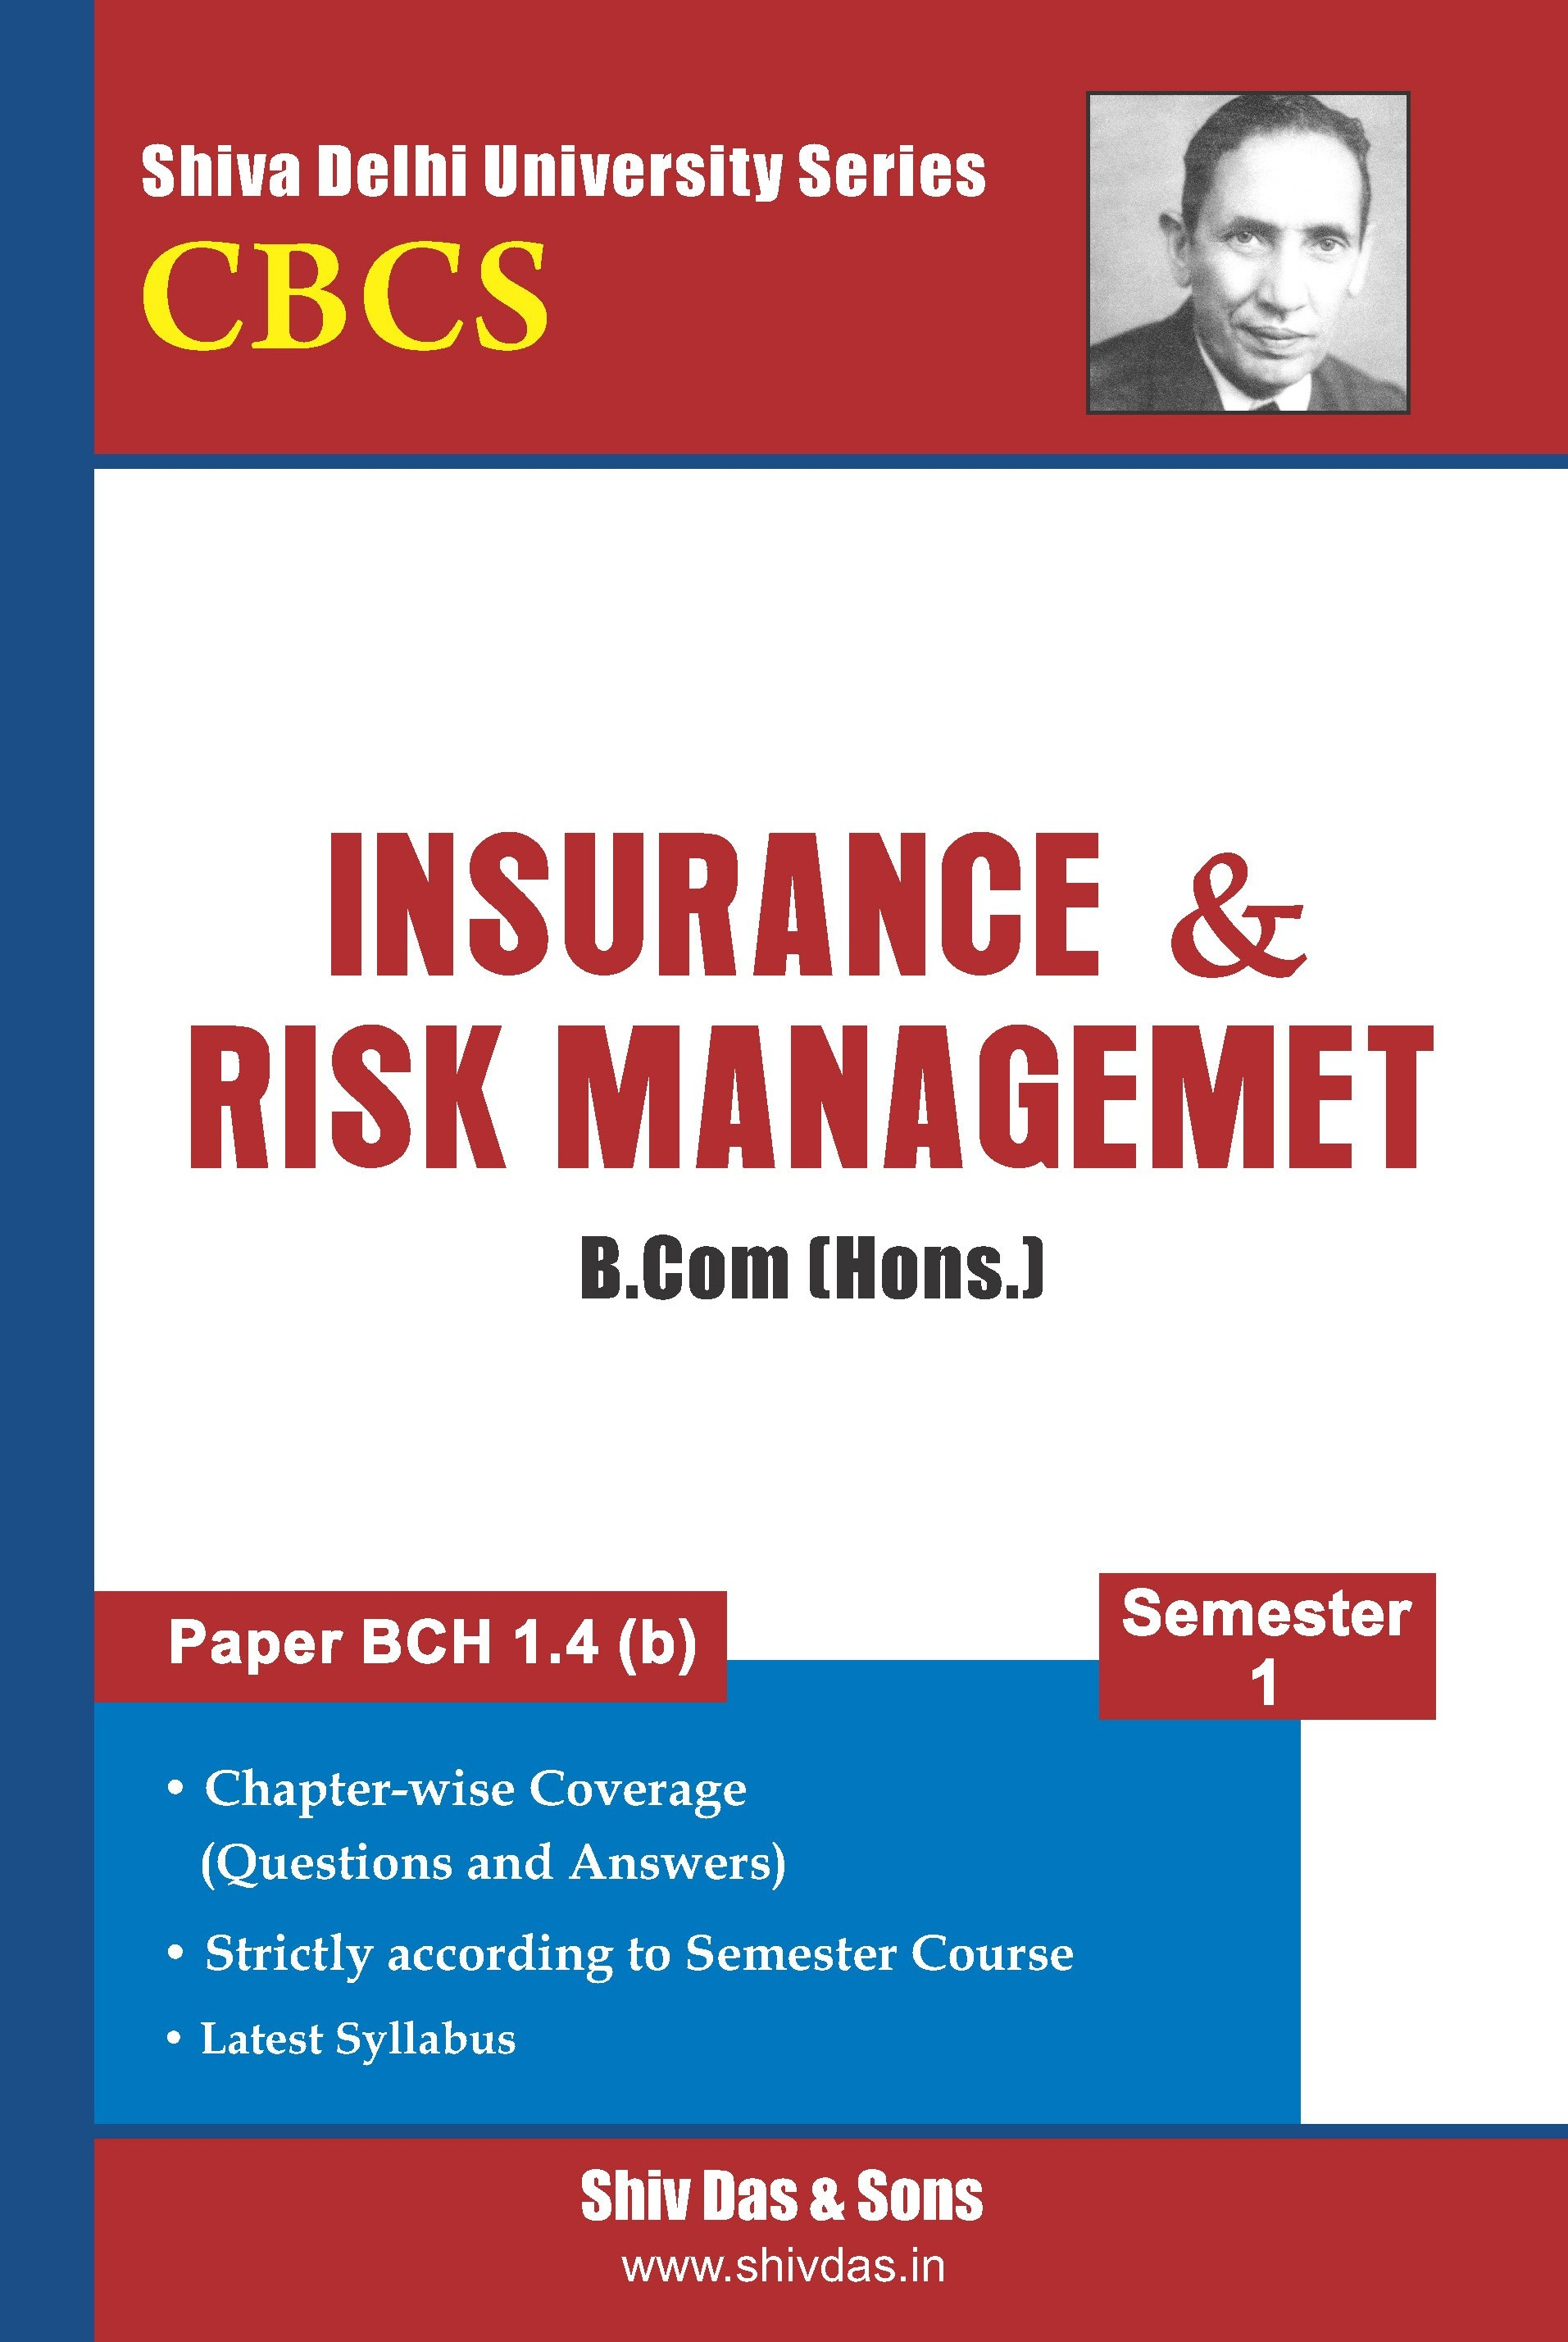 B.Com Hons. Semester-1 Insurance& Risk Management